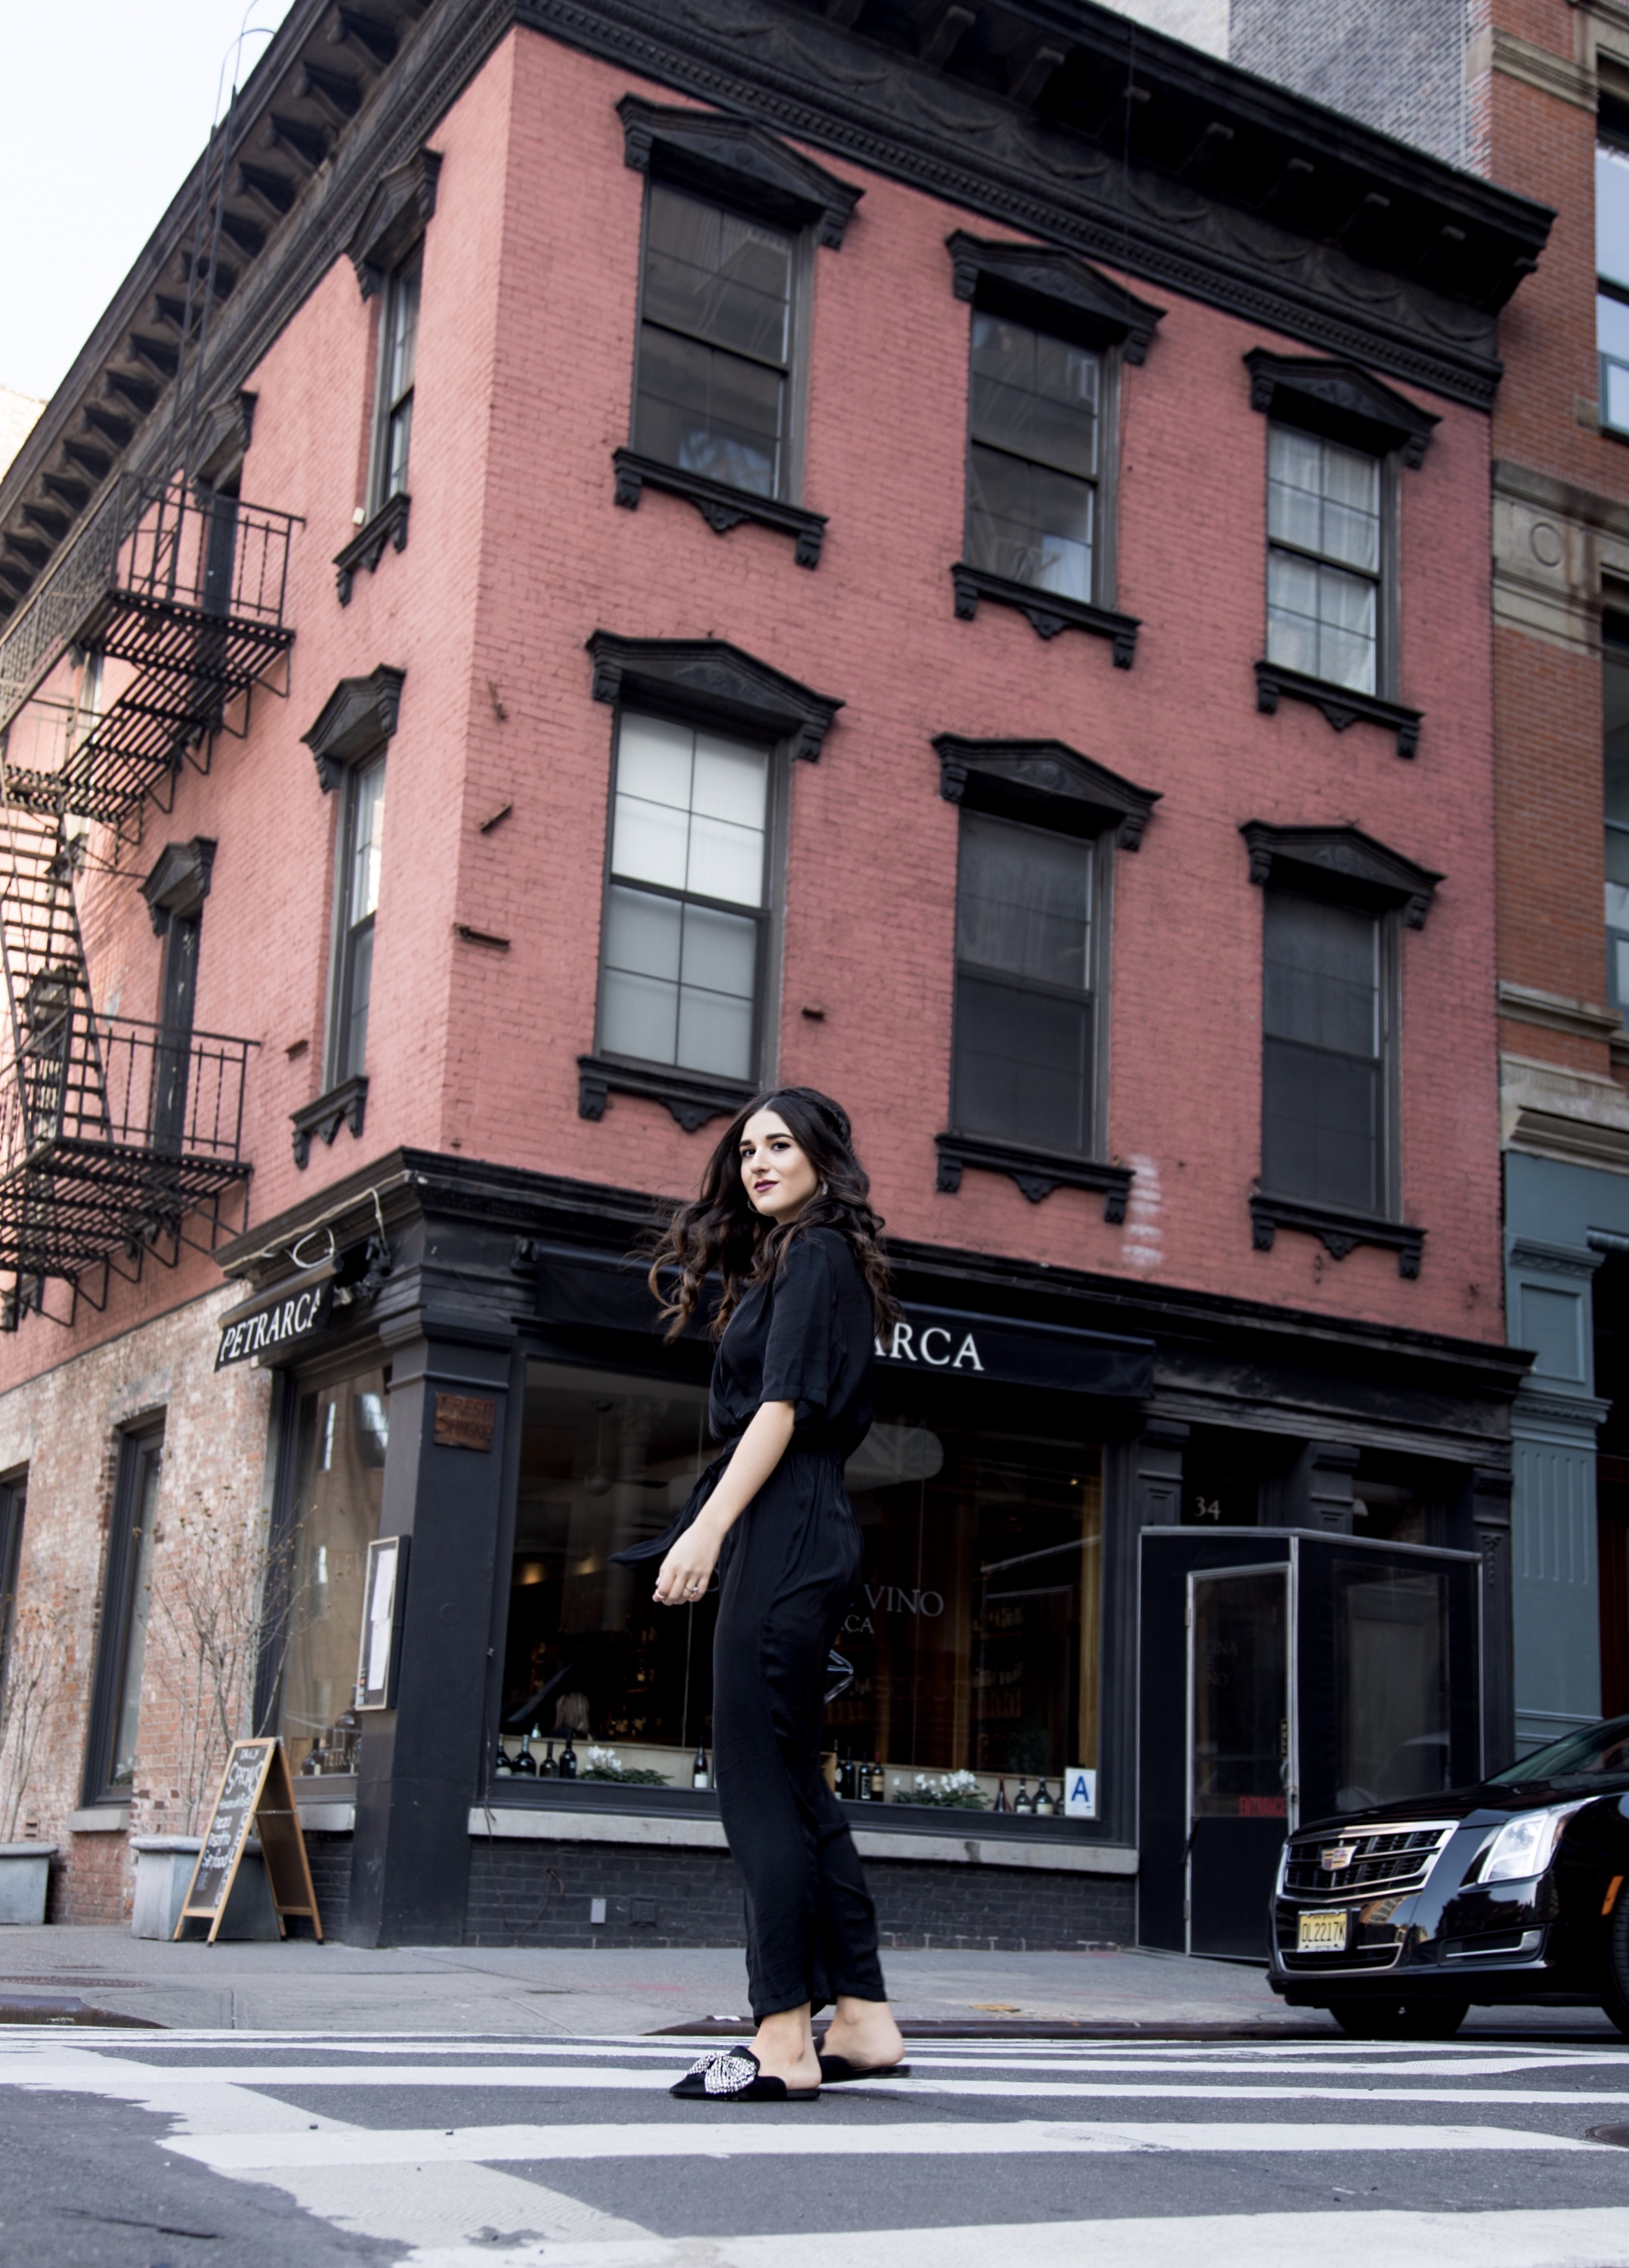 Where We're Going For Our Honeymoon Black Silk Jumpsuit Bow Mules Esther Santer Fashion Blog NYC Street Style Blogger Outfit OOTD Trendy Urban Outfitters Betsey Johnson Brand Collab Jeweled Shoes Earrings Braid Hairstyle Hoops Necklace Lips Clutch Bag.jpg